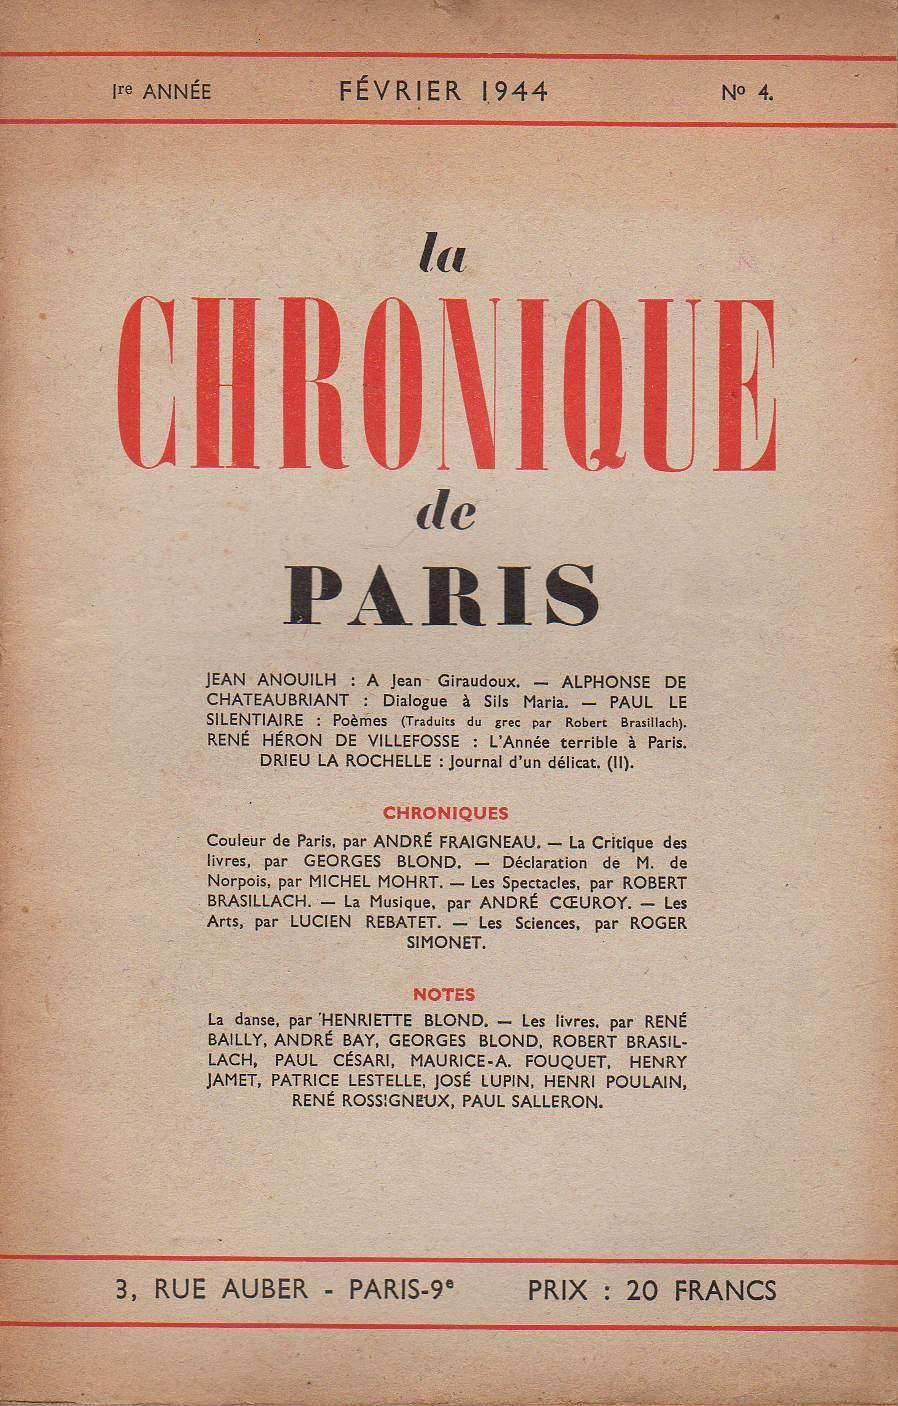 Chronique-de-Paris4.jpg